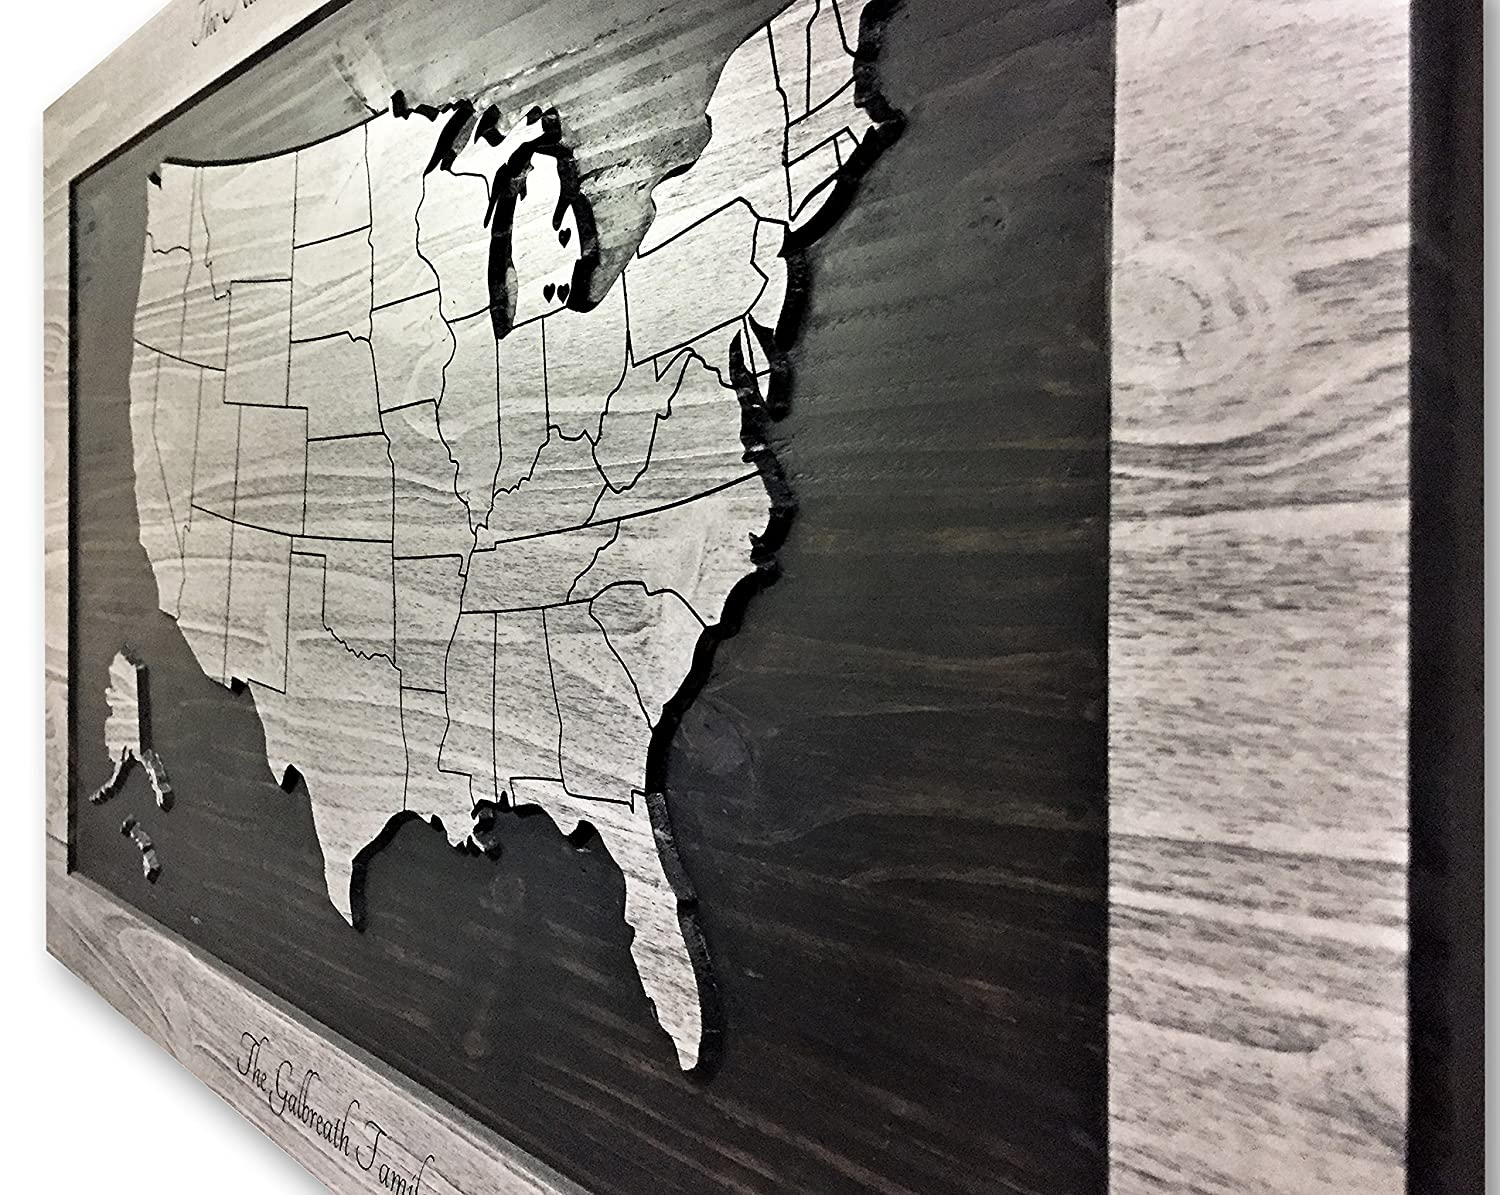 Amazon.com: Wood Wall Art, US Map Art, map of United States ... on map china, map graphics, map drawings, map history, map clothing, map curtains, map food, map fabric, map cartoons, map books, map projects, map puzzle, map wallpaper, map postcards, map dishes, map services, map accessories, map design, map home decor, map social work,